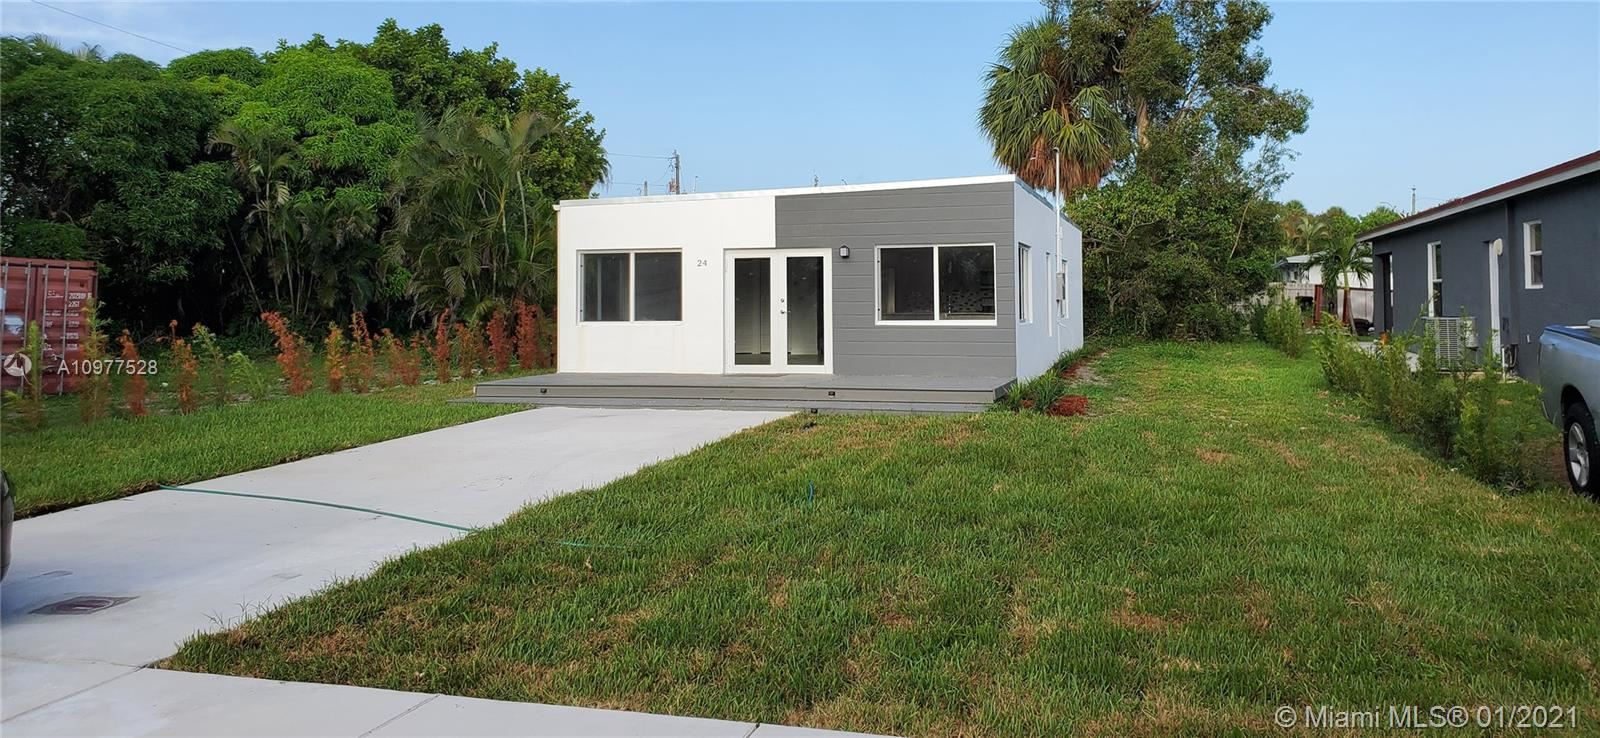 24 NW 13th Ave, Delray Beach, FL 33444 - #: A10977528